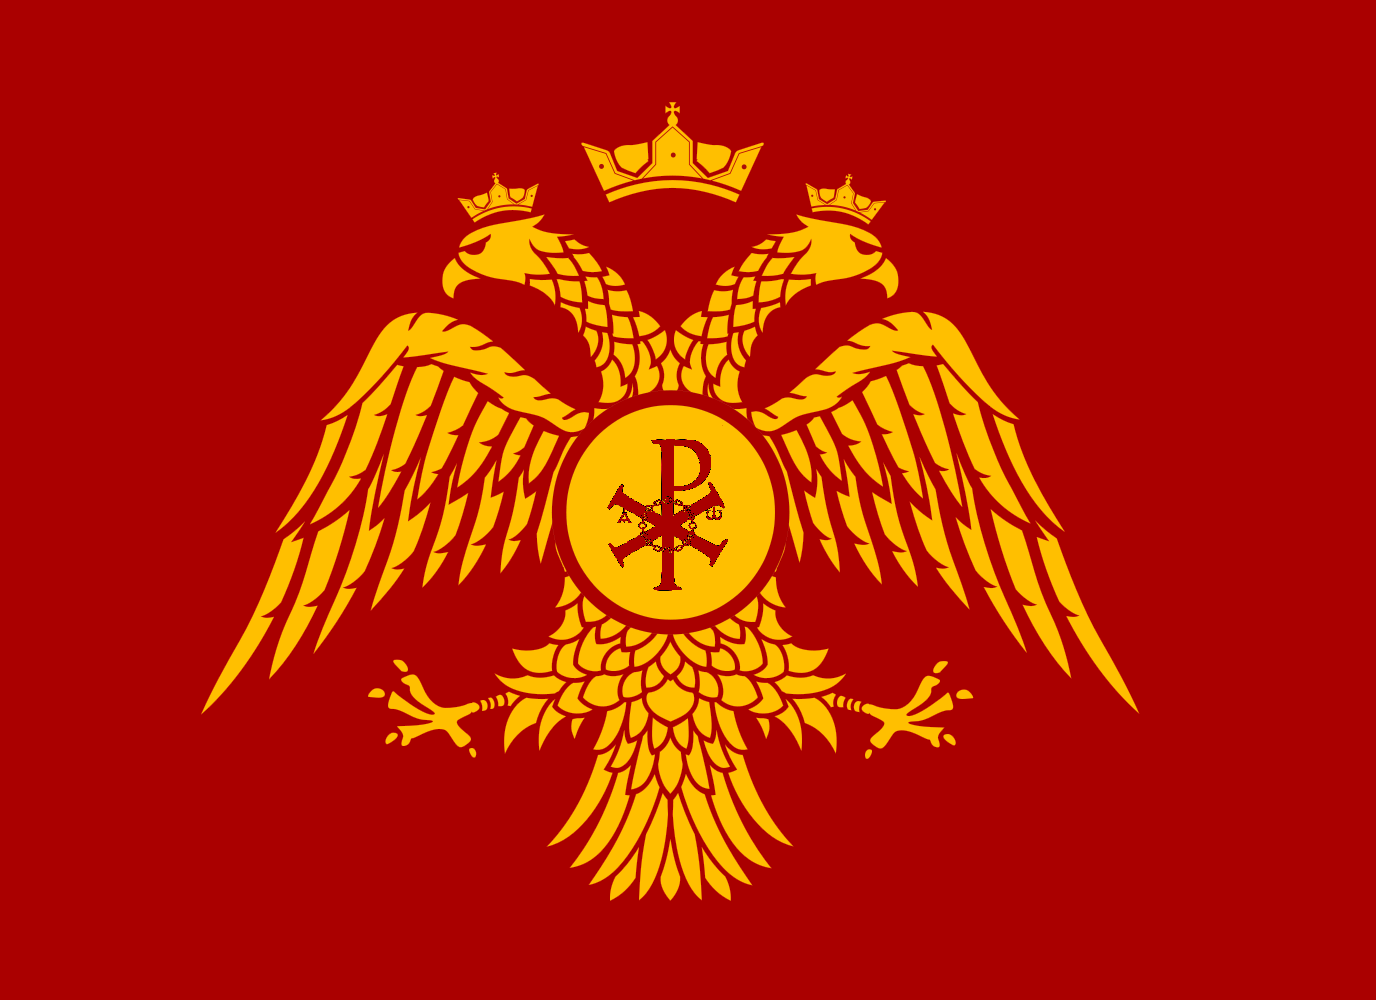 Flag of the Orthodox Chuch of Byzantine Empire | Flags and ...